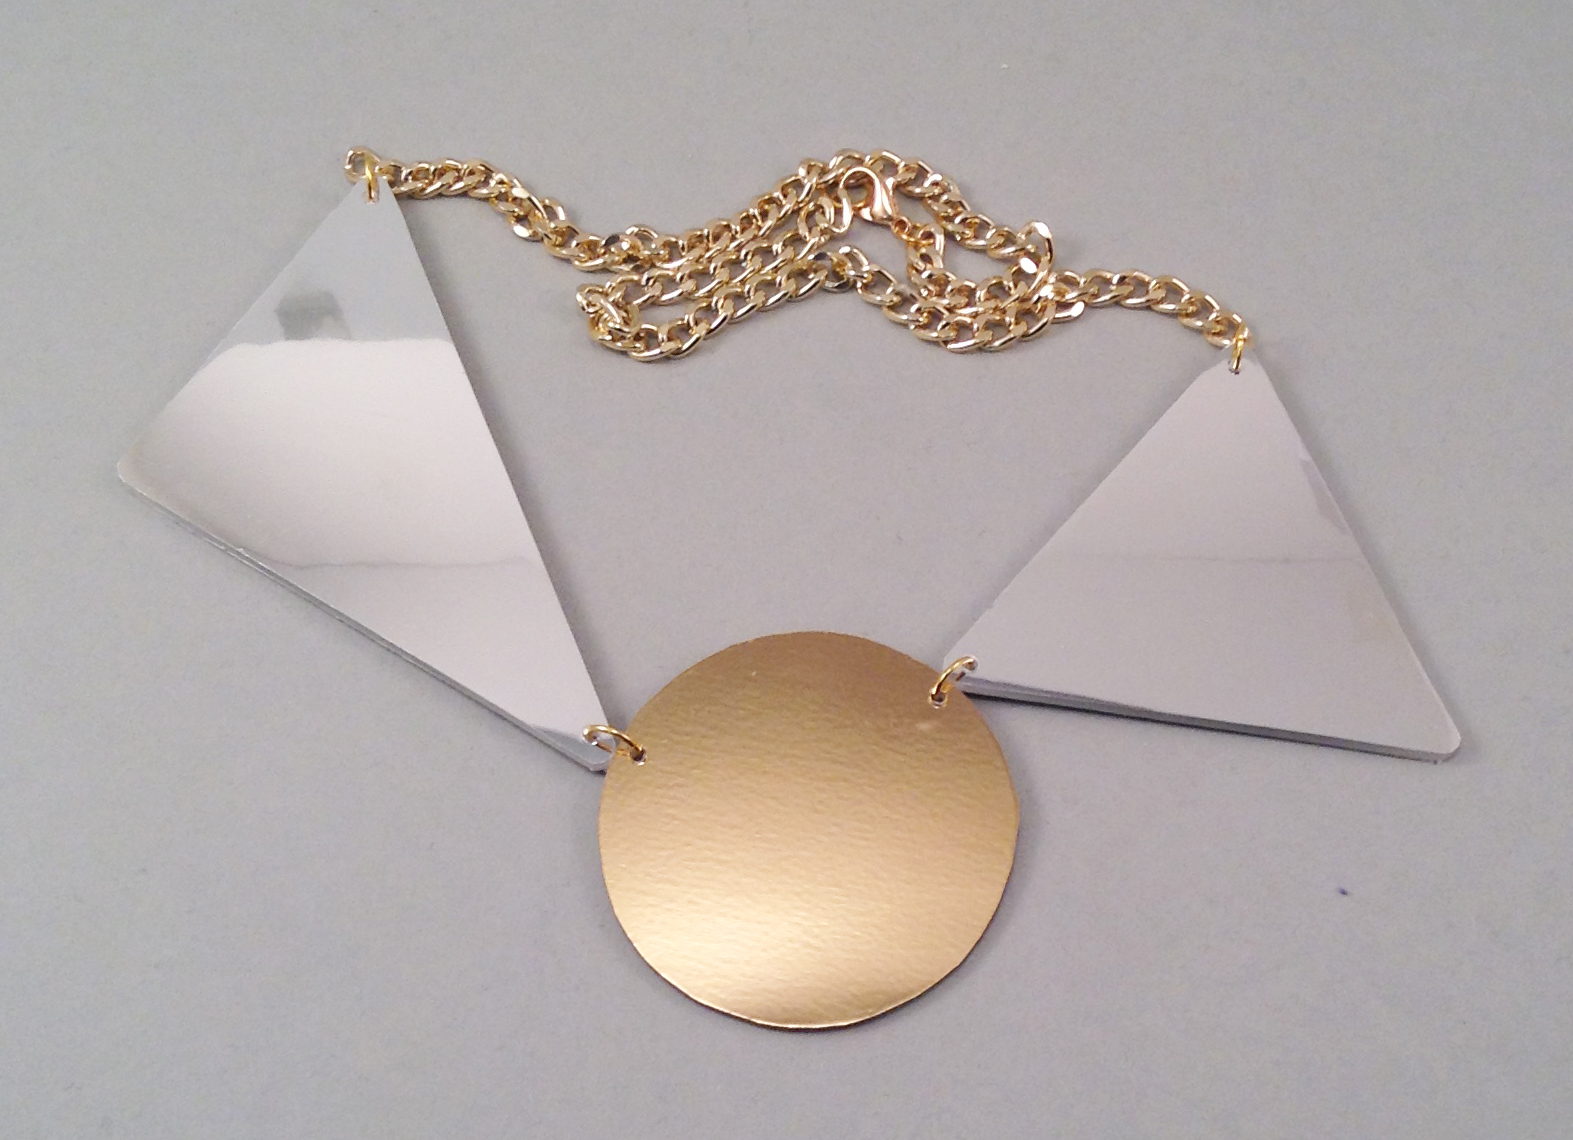 Golcircle necklace